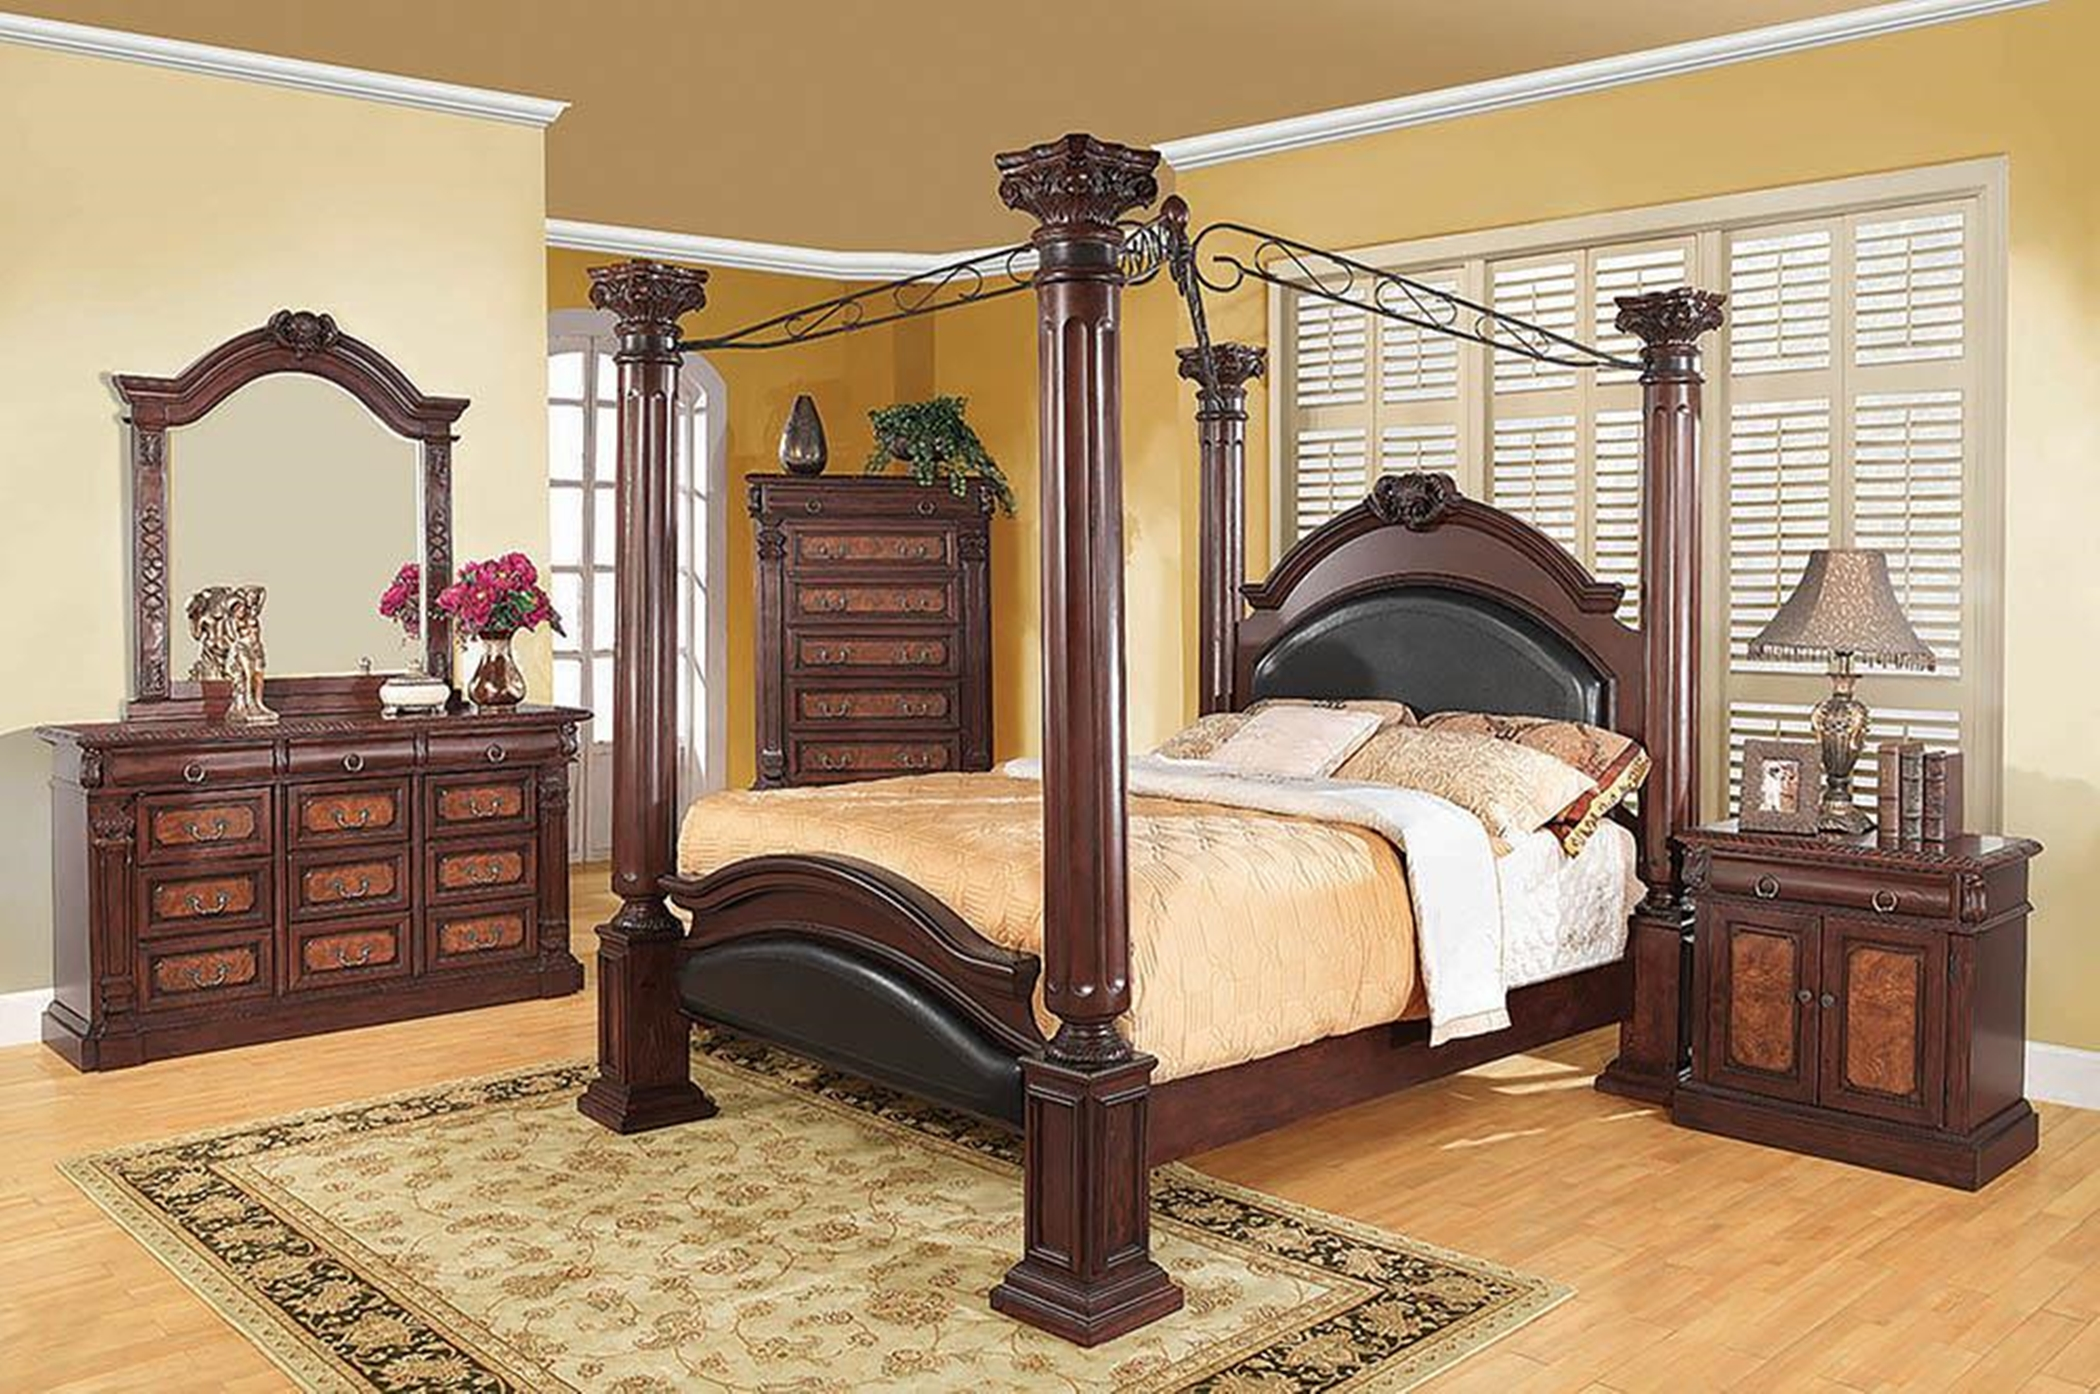 Grand Prado Four Post E. King Bed